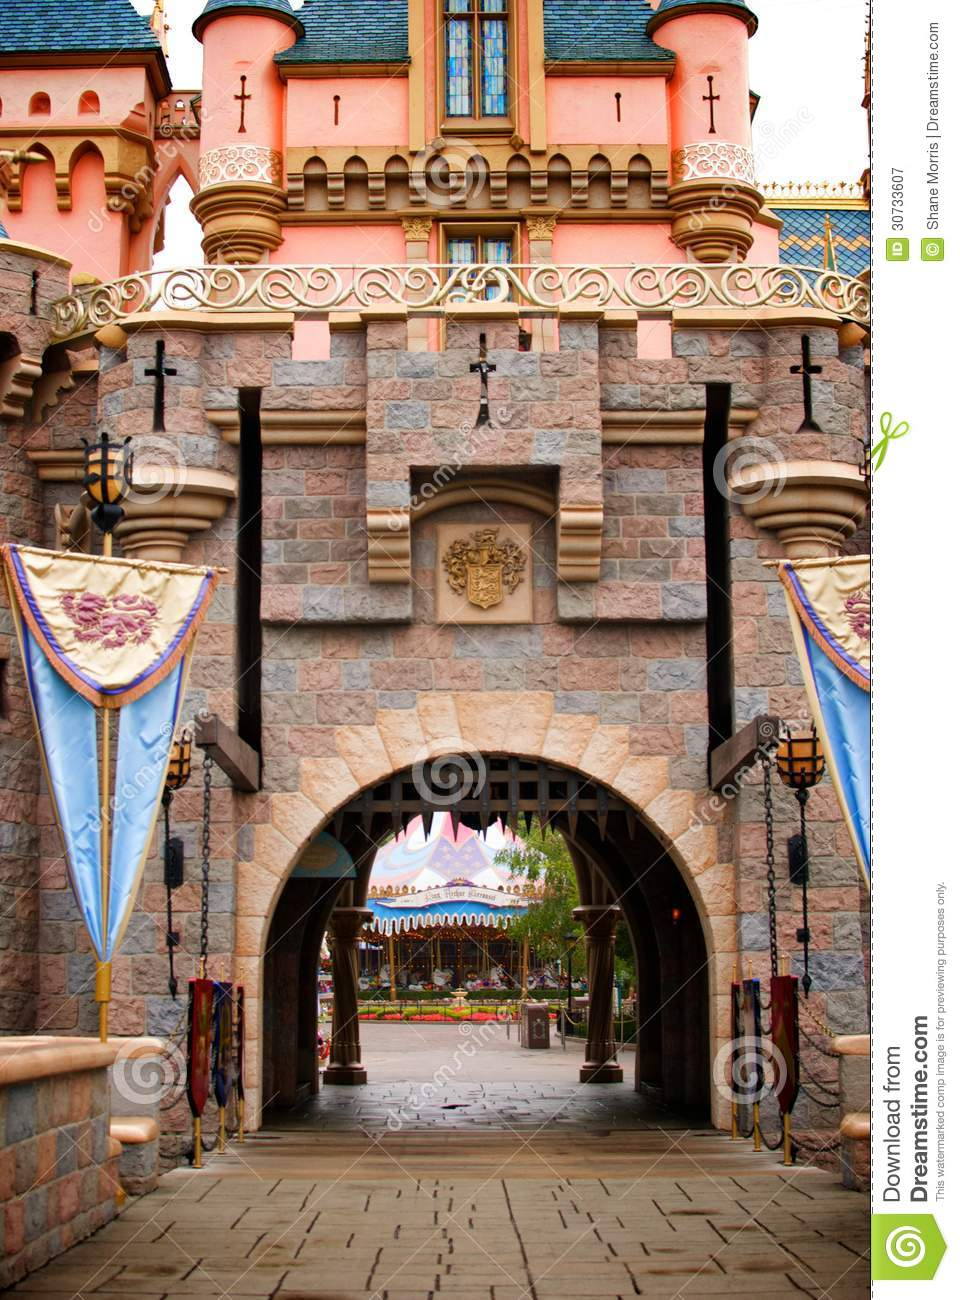 Fantasy Castle With Flags And Iron Gate Royalty Free Stock